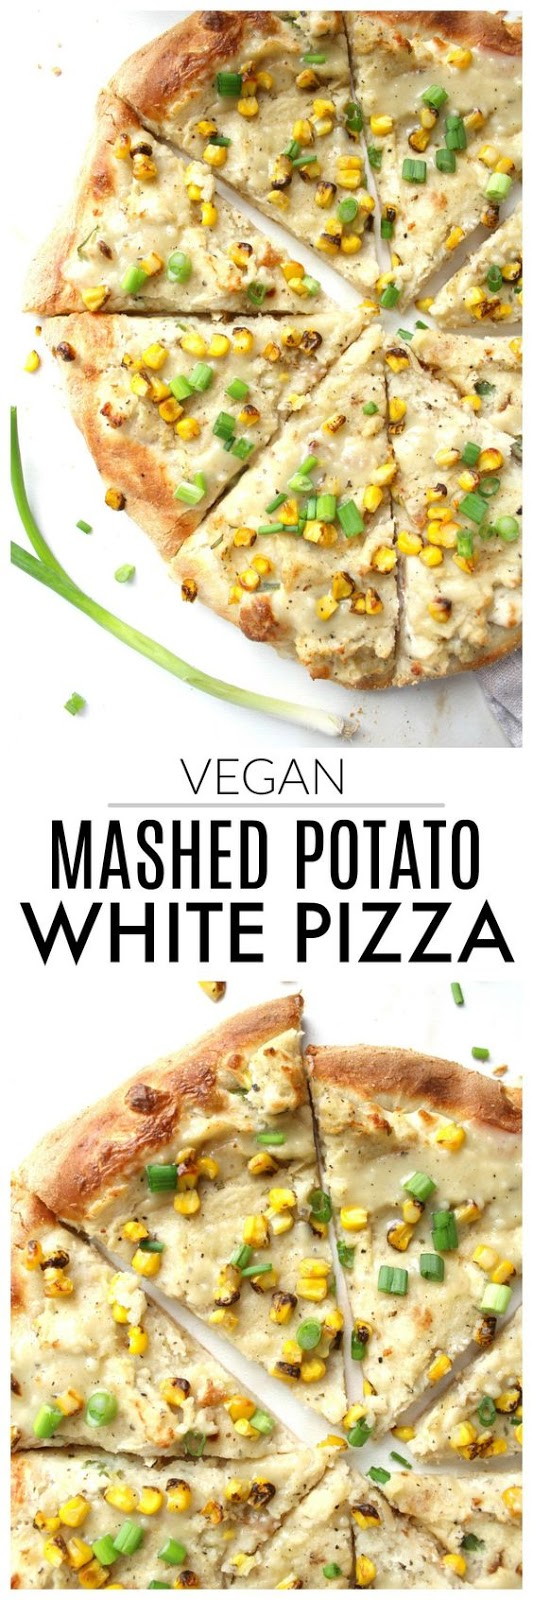 Low Carb/Vegan Mashed Potato White Pizza